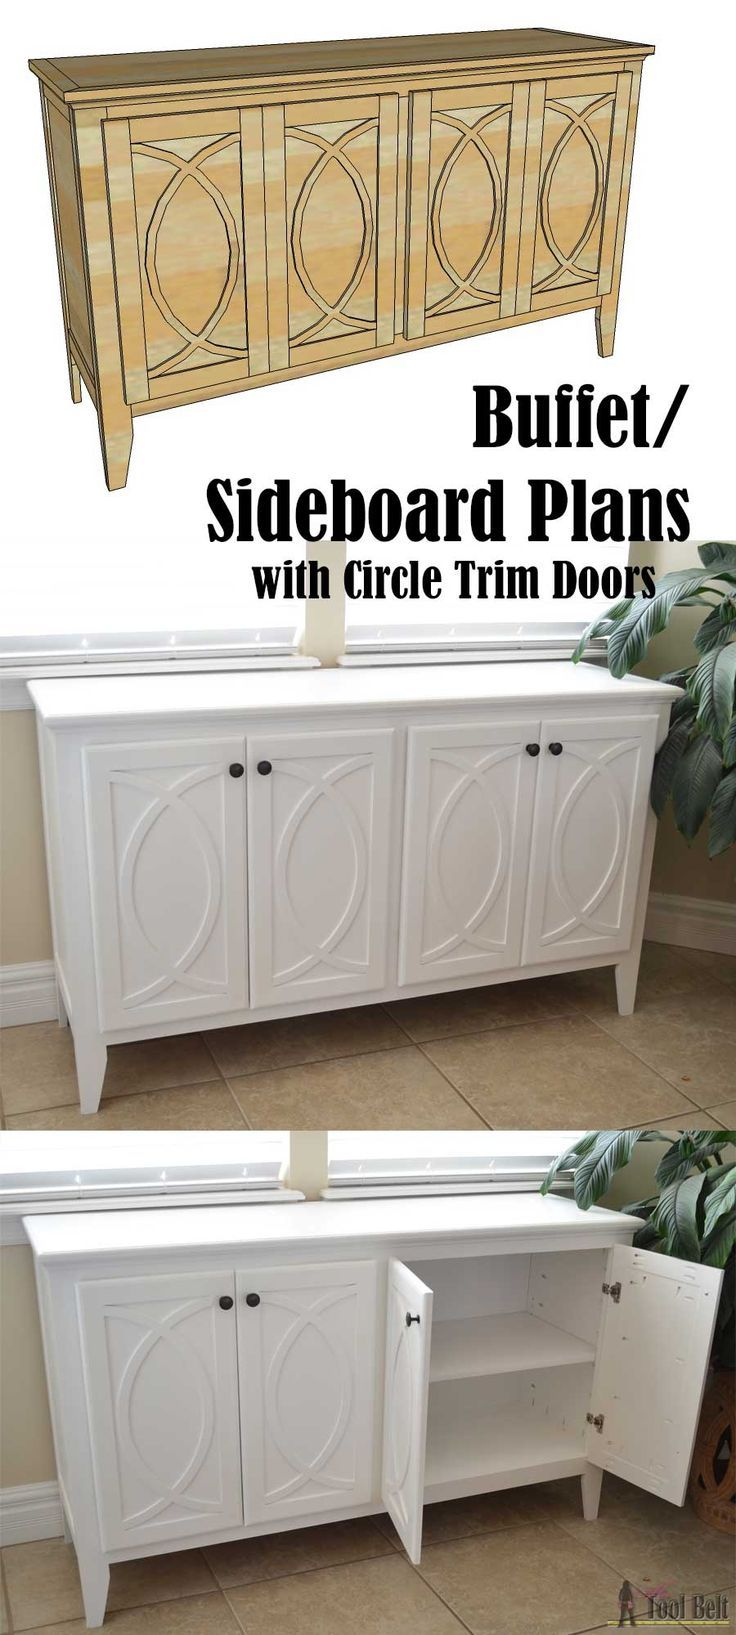 Cabinet Plans DIY Buffet or Sideboard with circle trim doors. This buffet cabinet boasts plent...